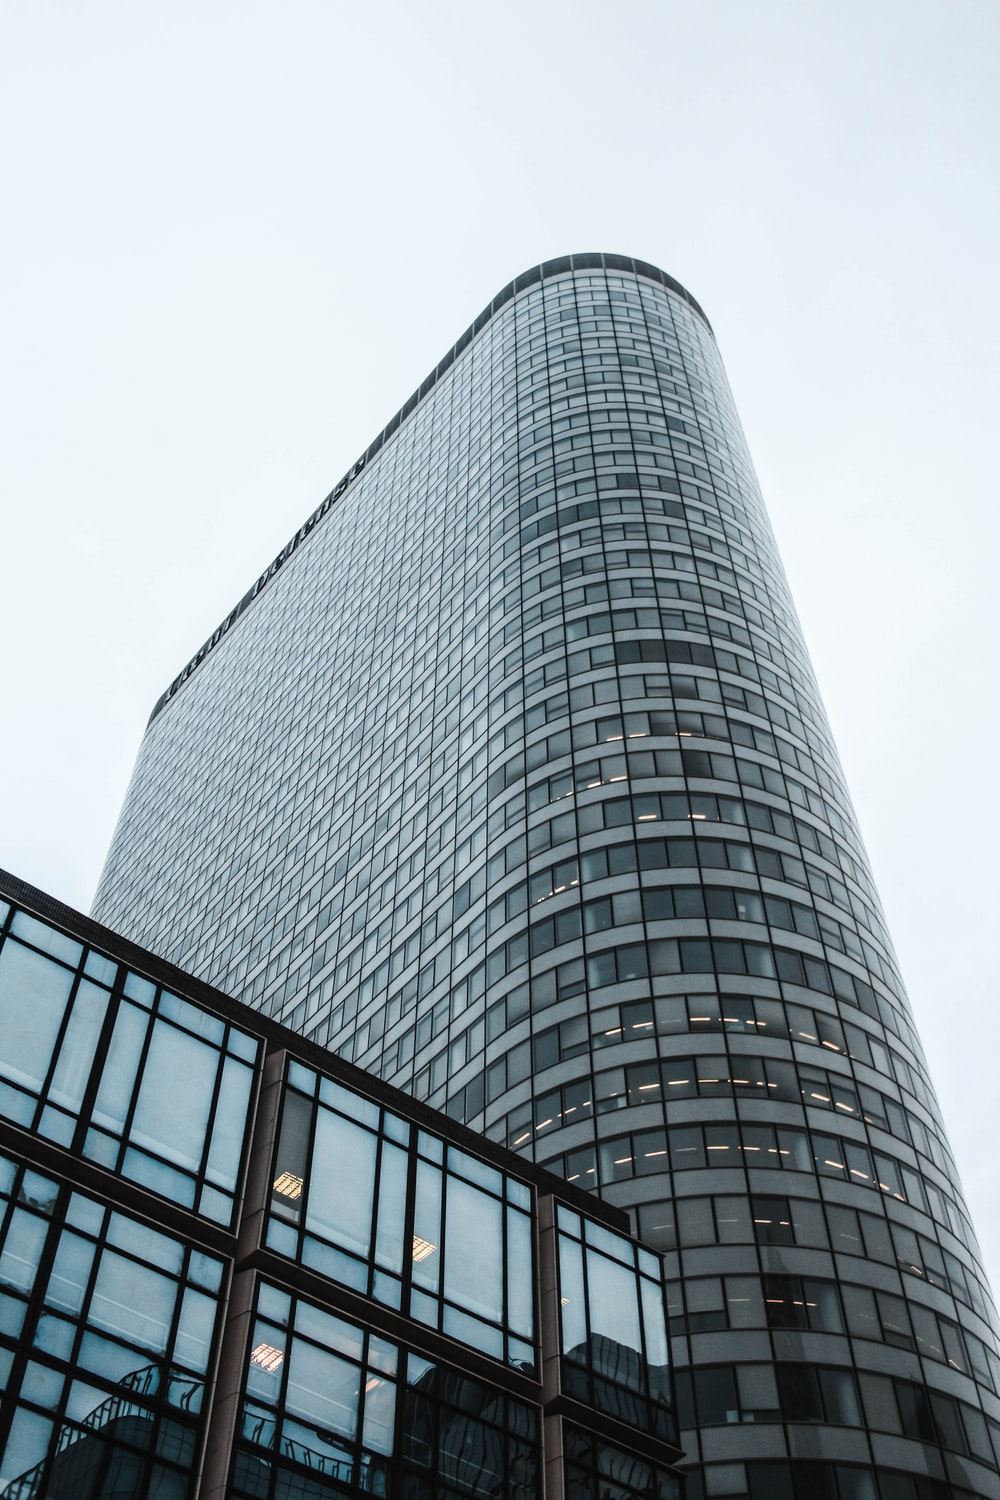 high-rise building under white sky